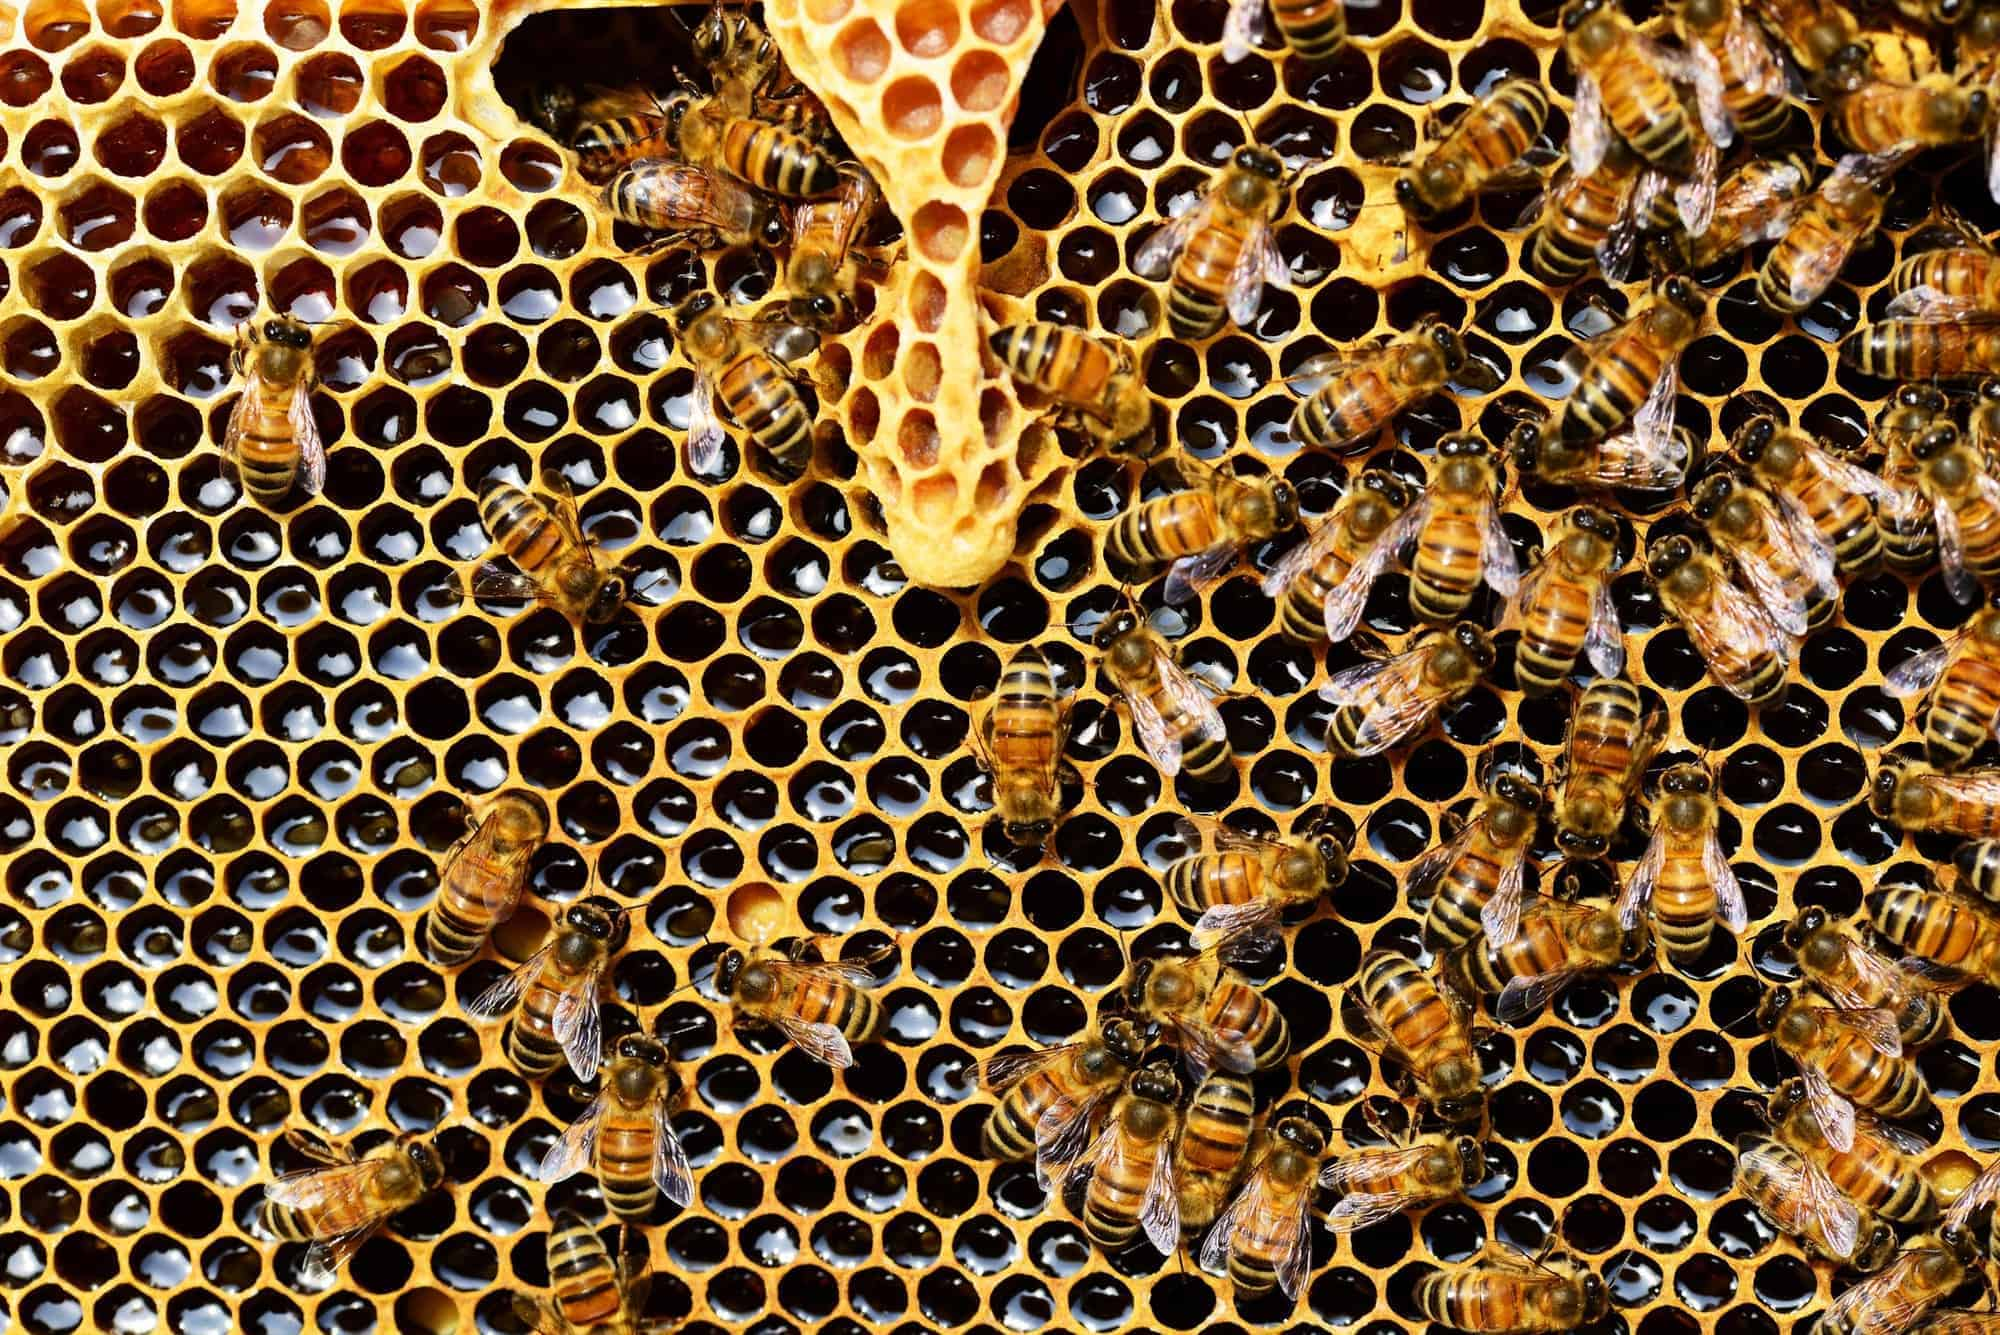 queen cup honeycomb honey bee new queen rearing compartment 56876 - What is Hydrogen Peroxide?